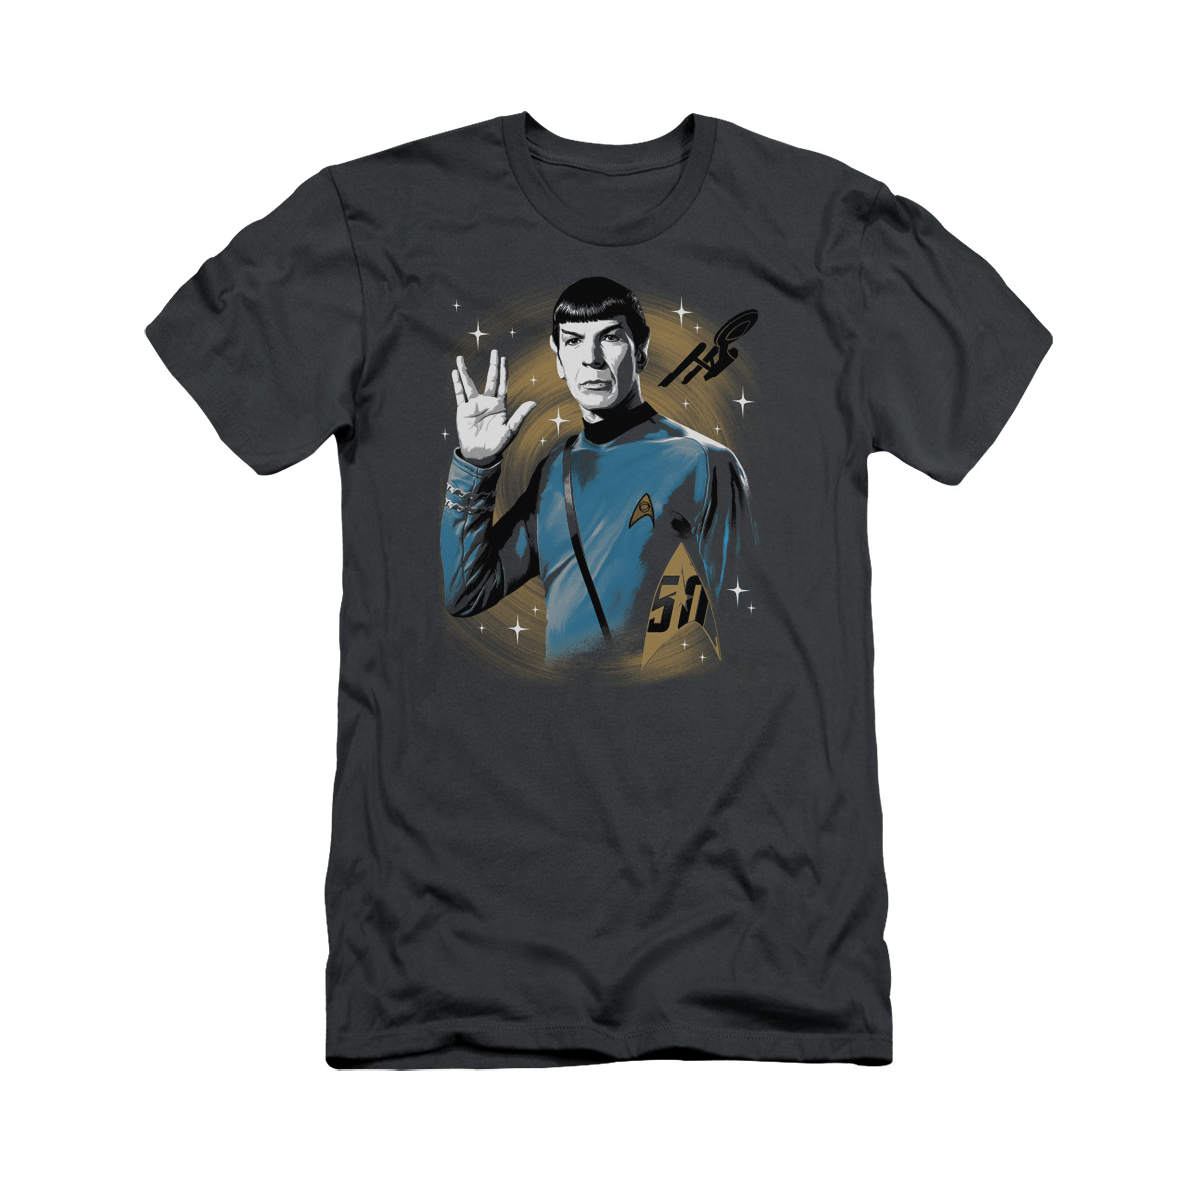 Star Trek 50th Anniversary Spock T-Shirt